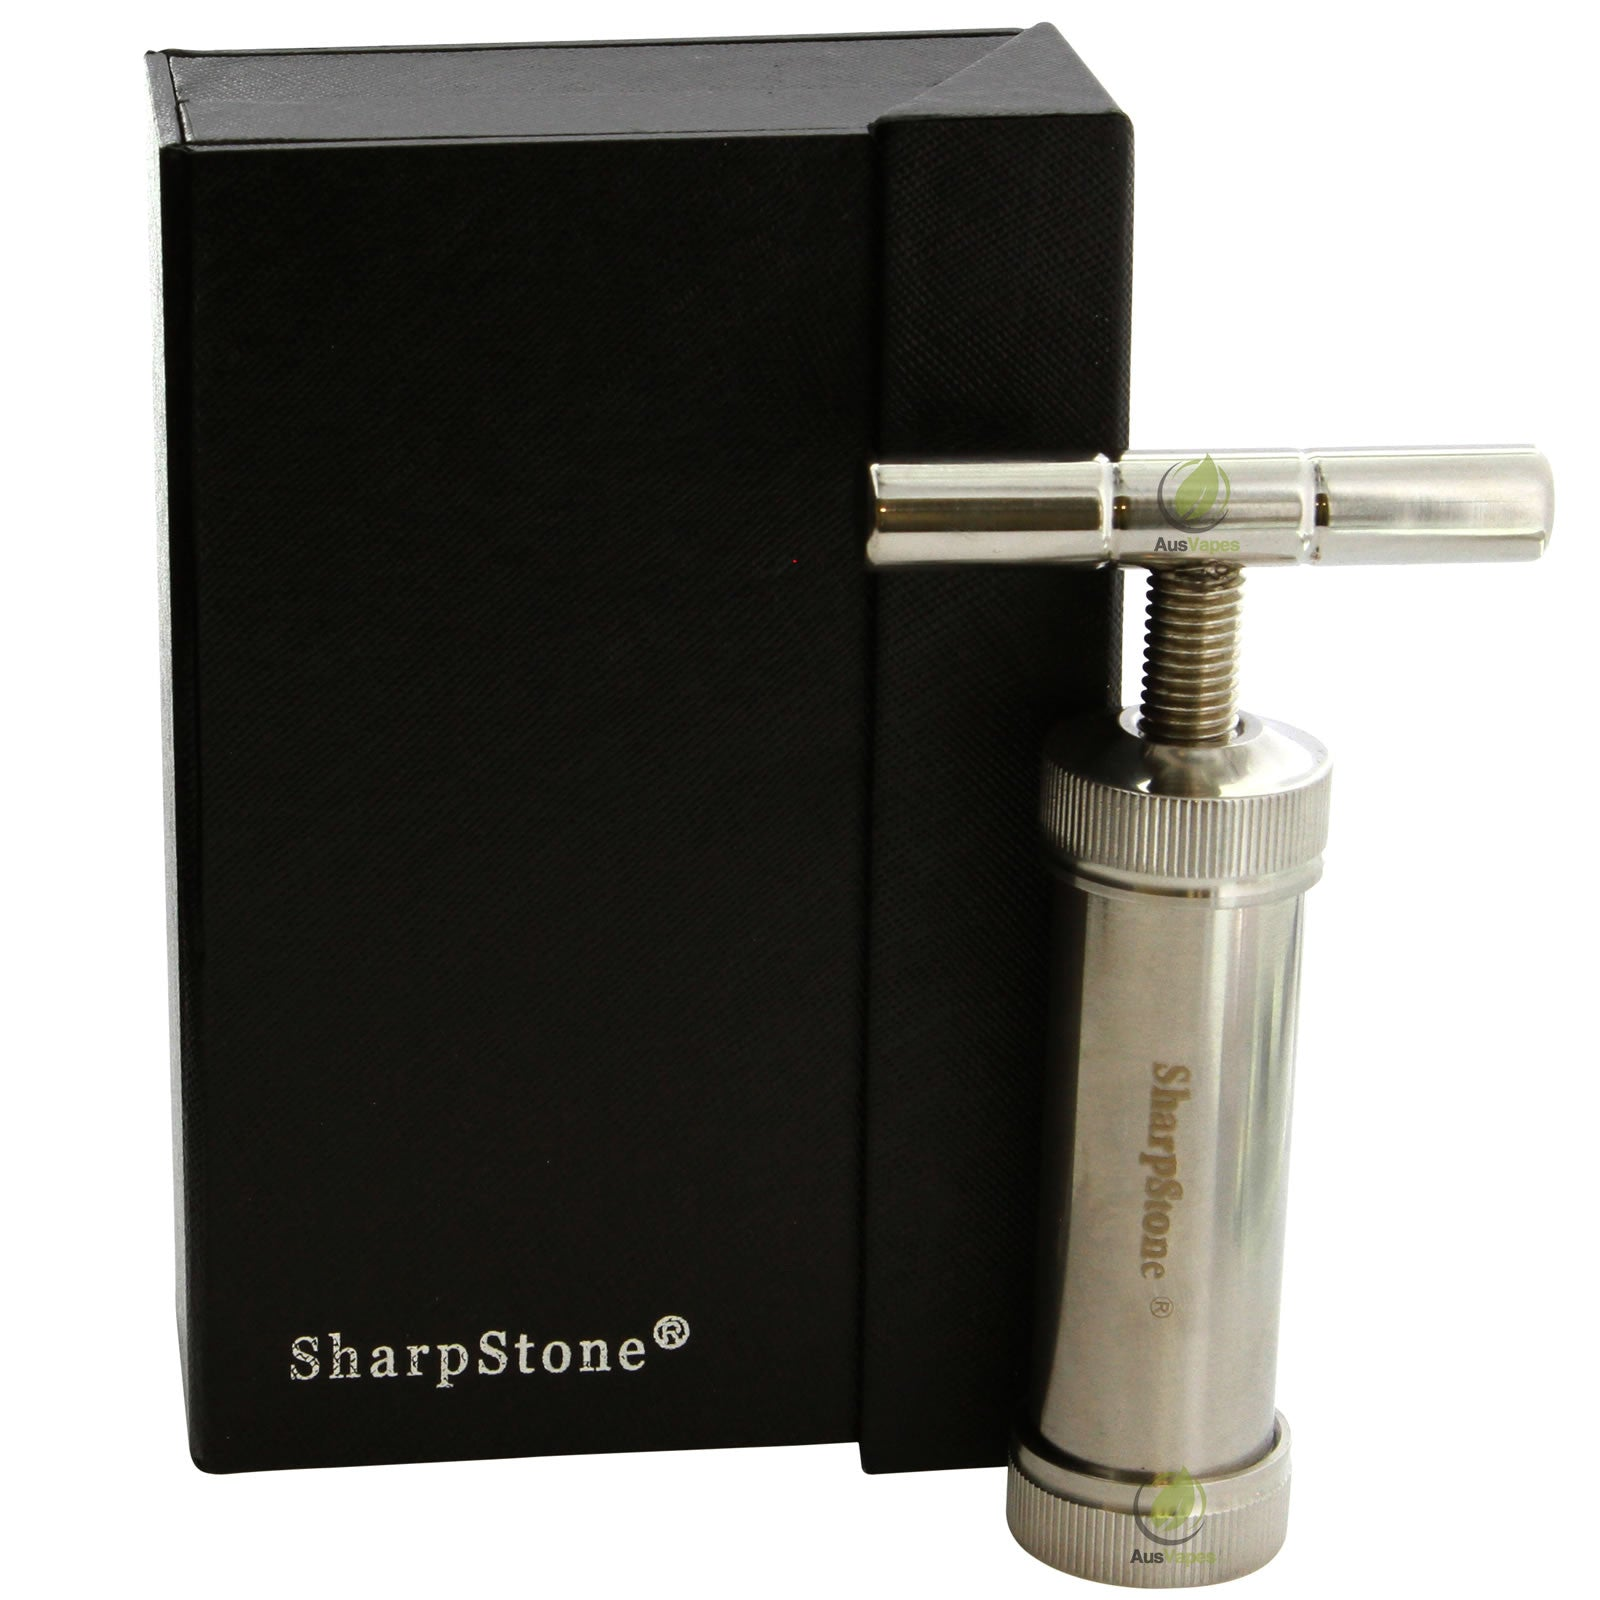 DISCONTINUED 134mm Sharpstone T-Style Press w/ Case